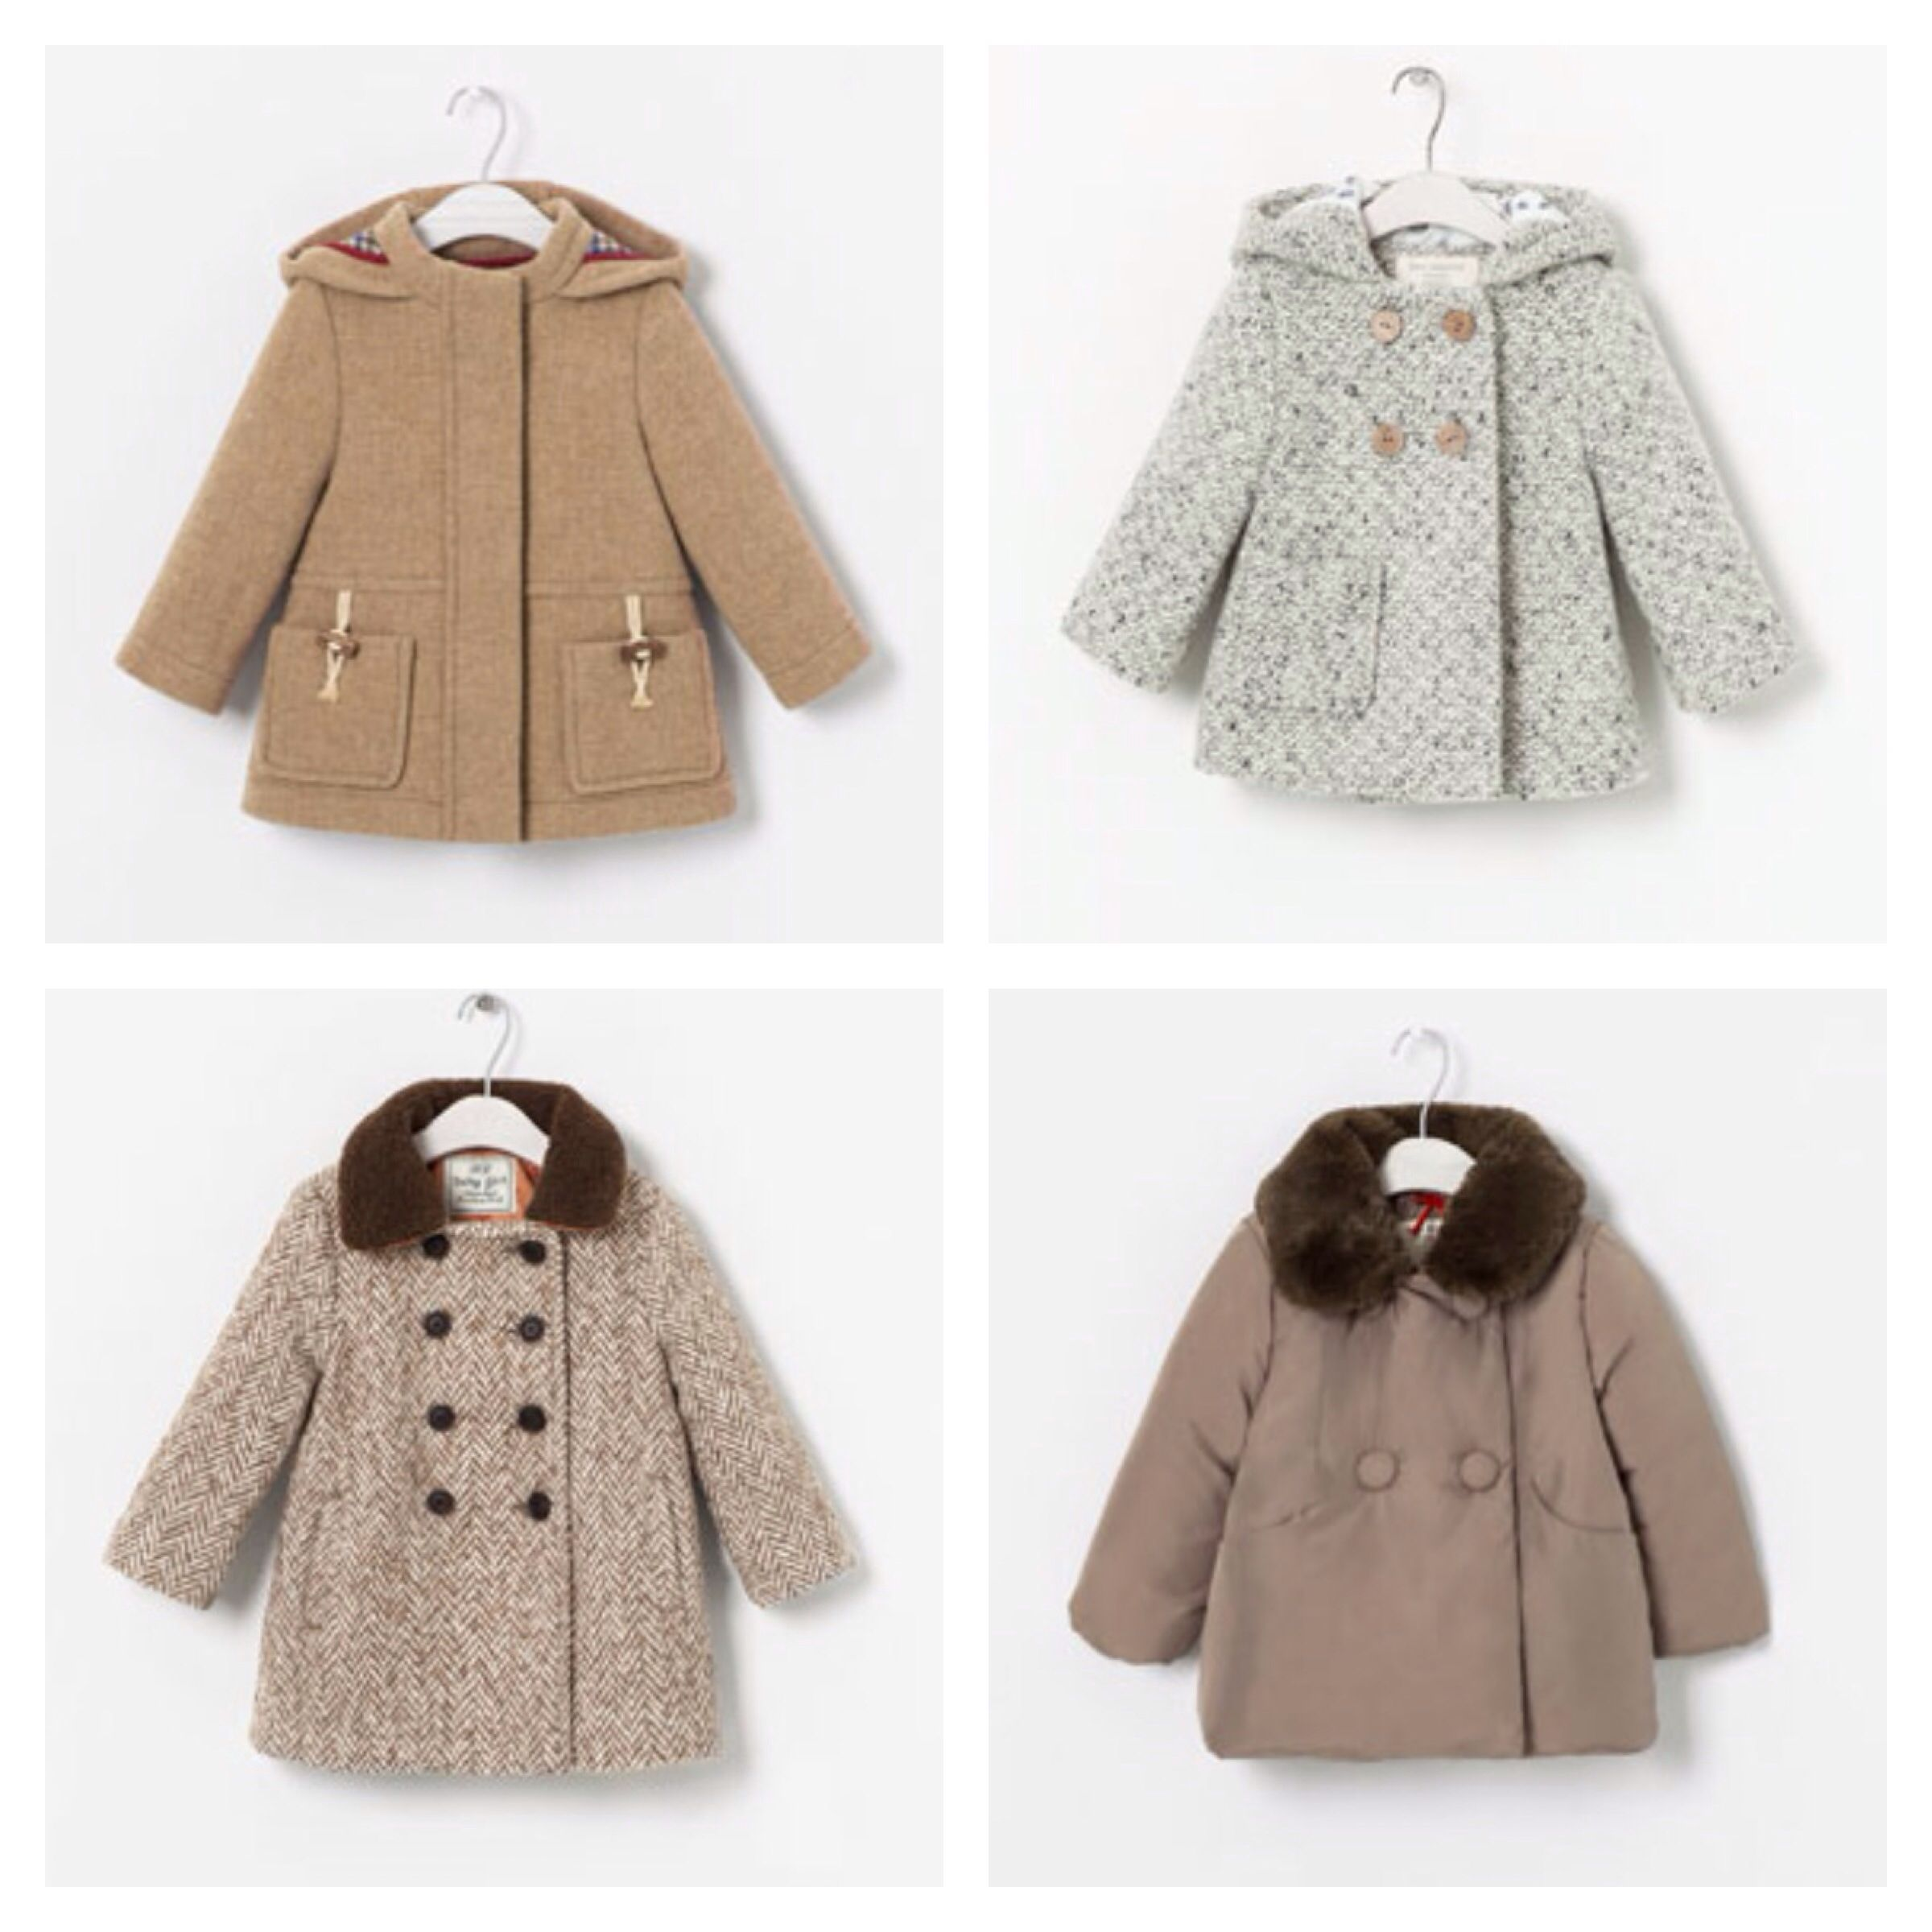 Zara baby girl coat | Kids fashion | Pinterest | Zara baby, Babies ...